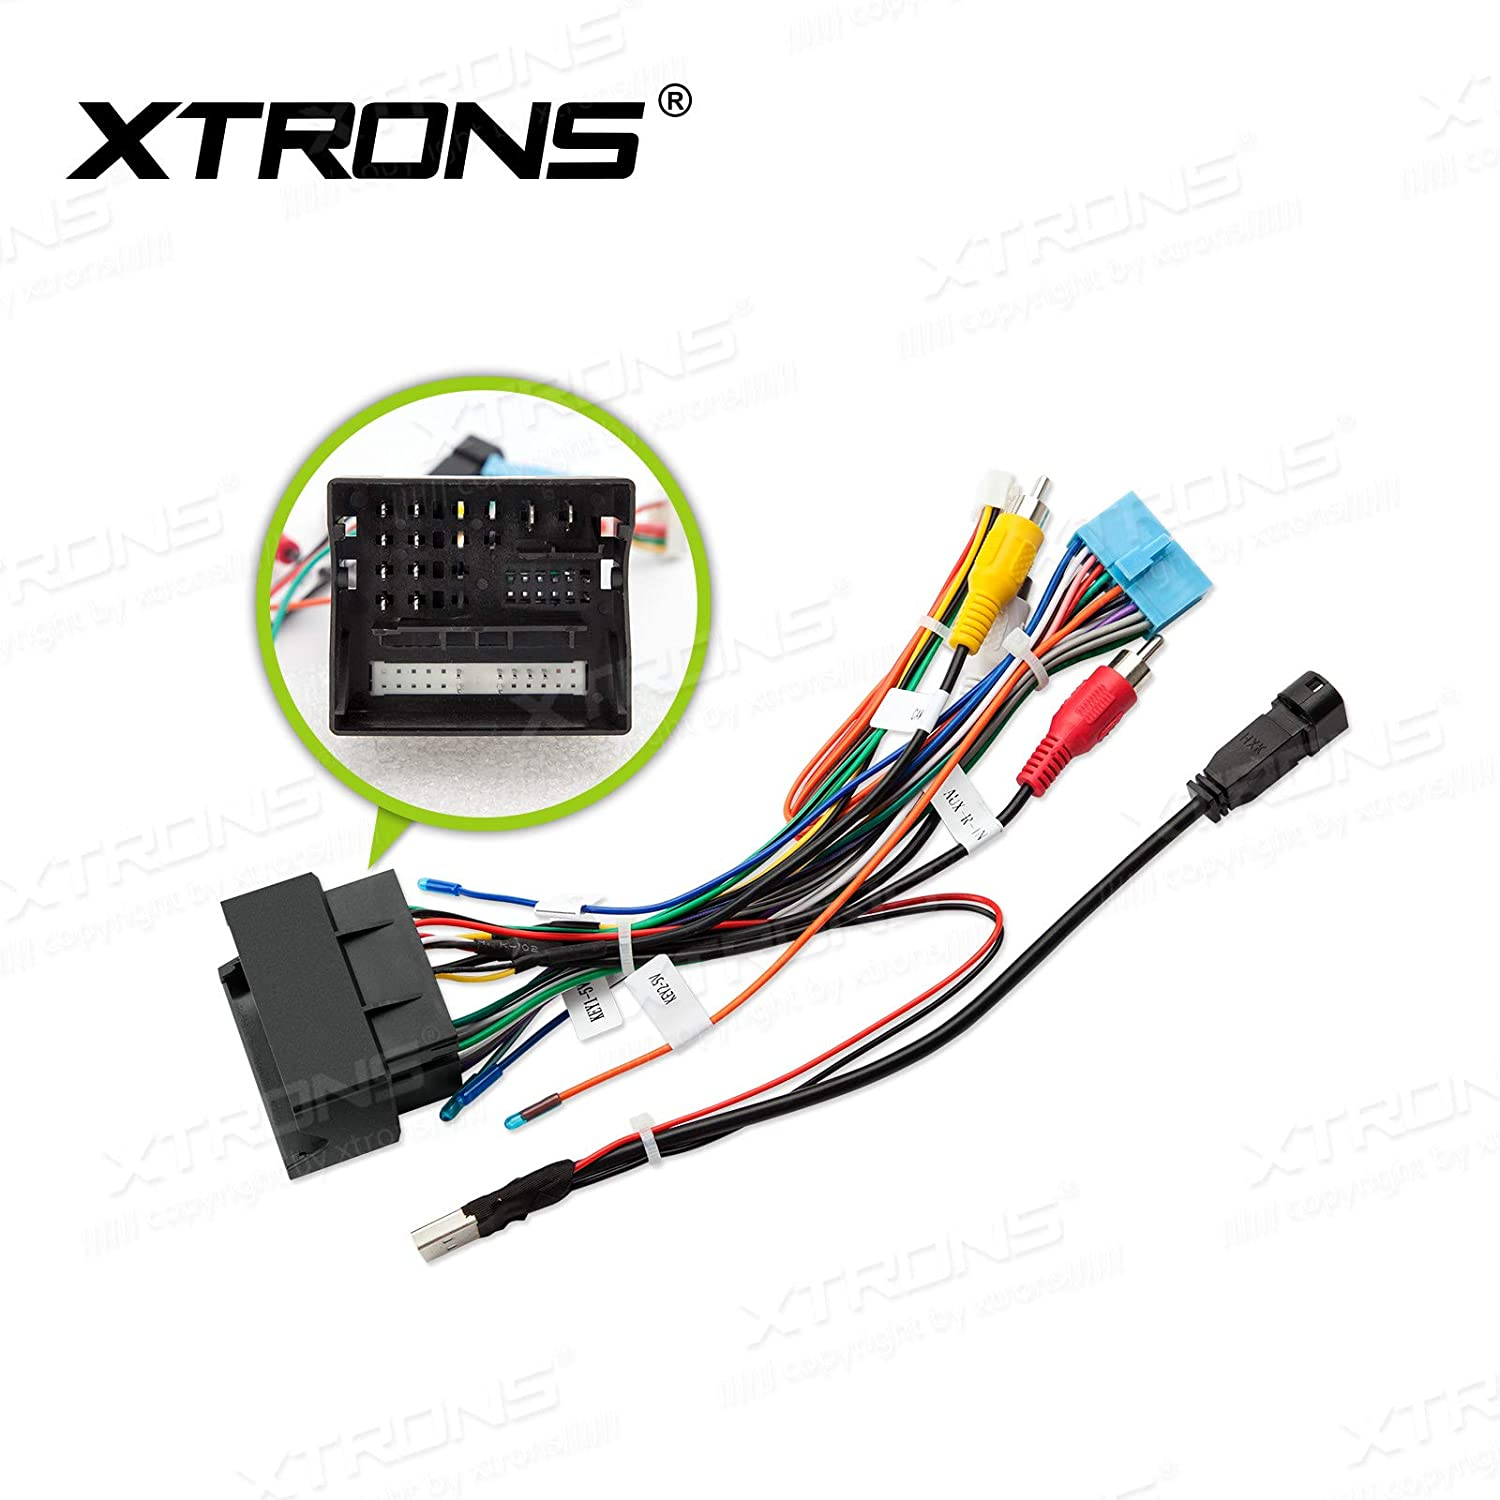 [SCHEMATICS_4JK]  Amazon.com: XTRONS ISO Wiring Harness for VW Golf for Skoda Car Stereo DVD  Player Android Head Unit: Car Electronics | Vw Golf Wire Harness |  | Amazon.com